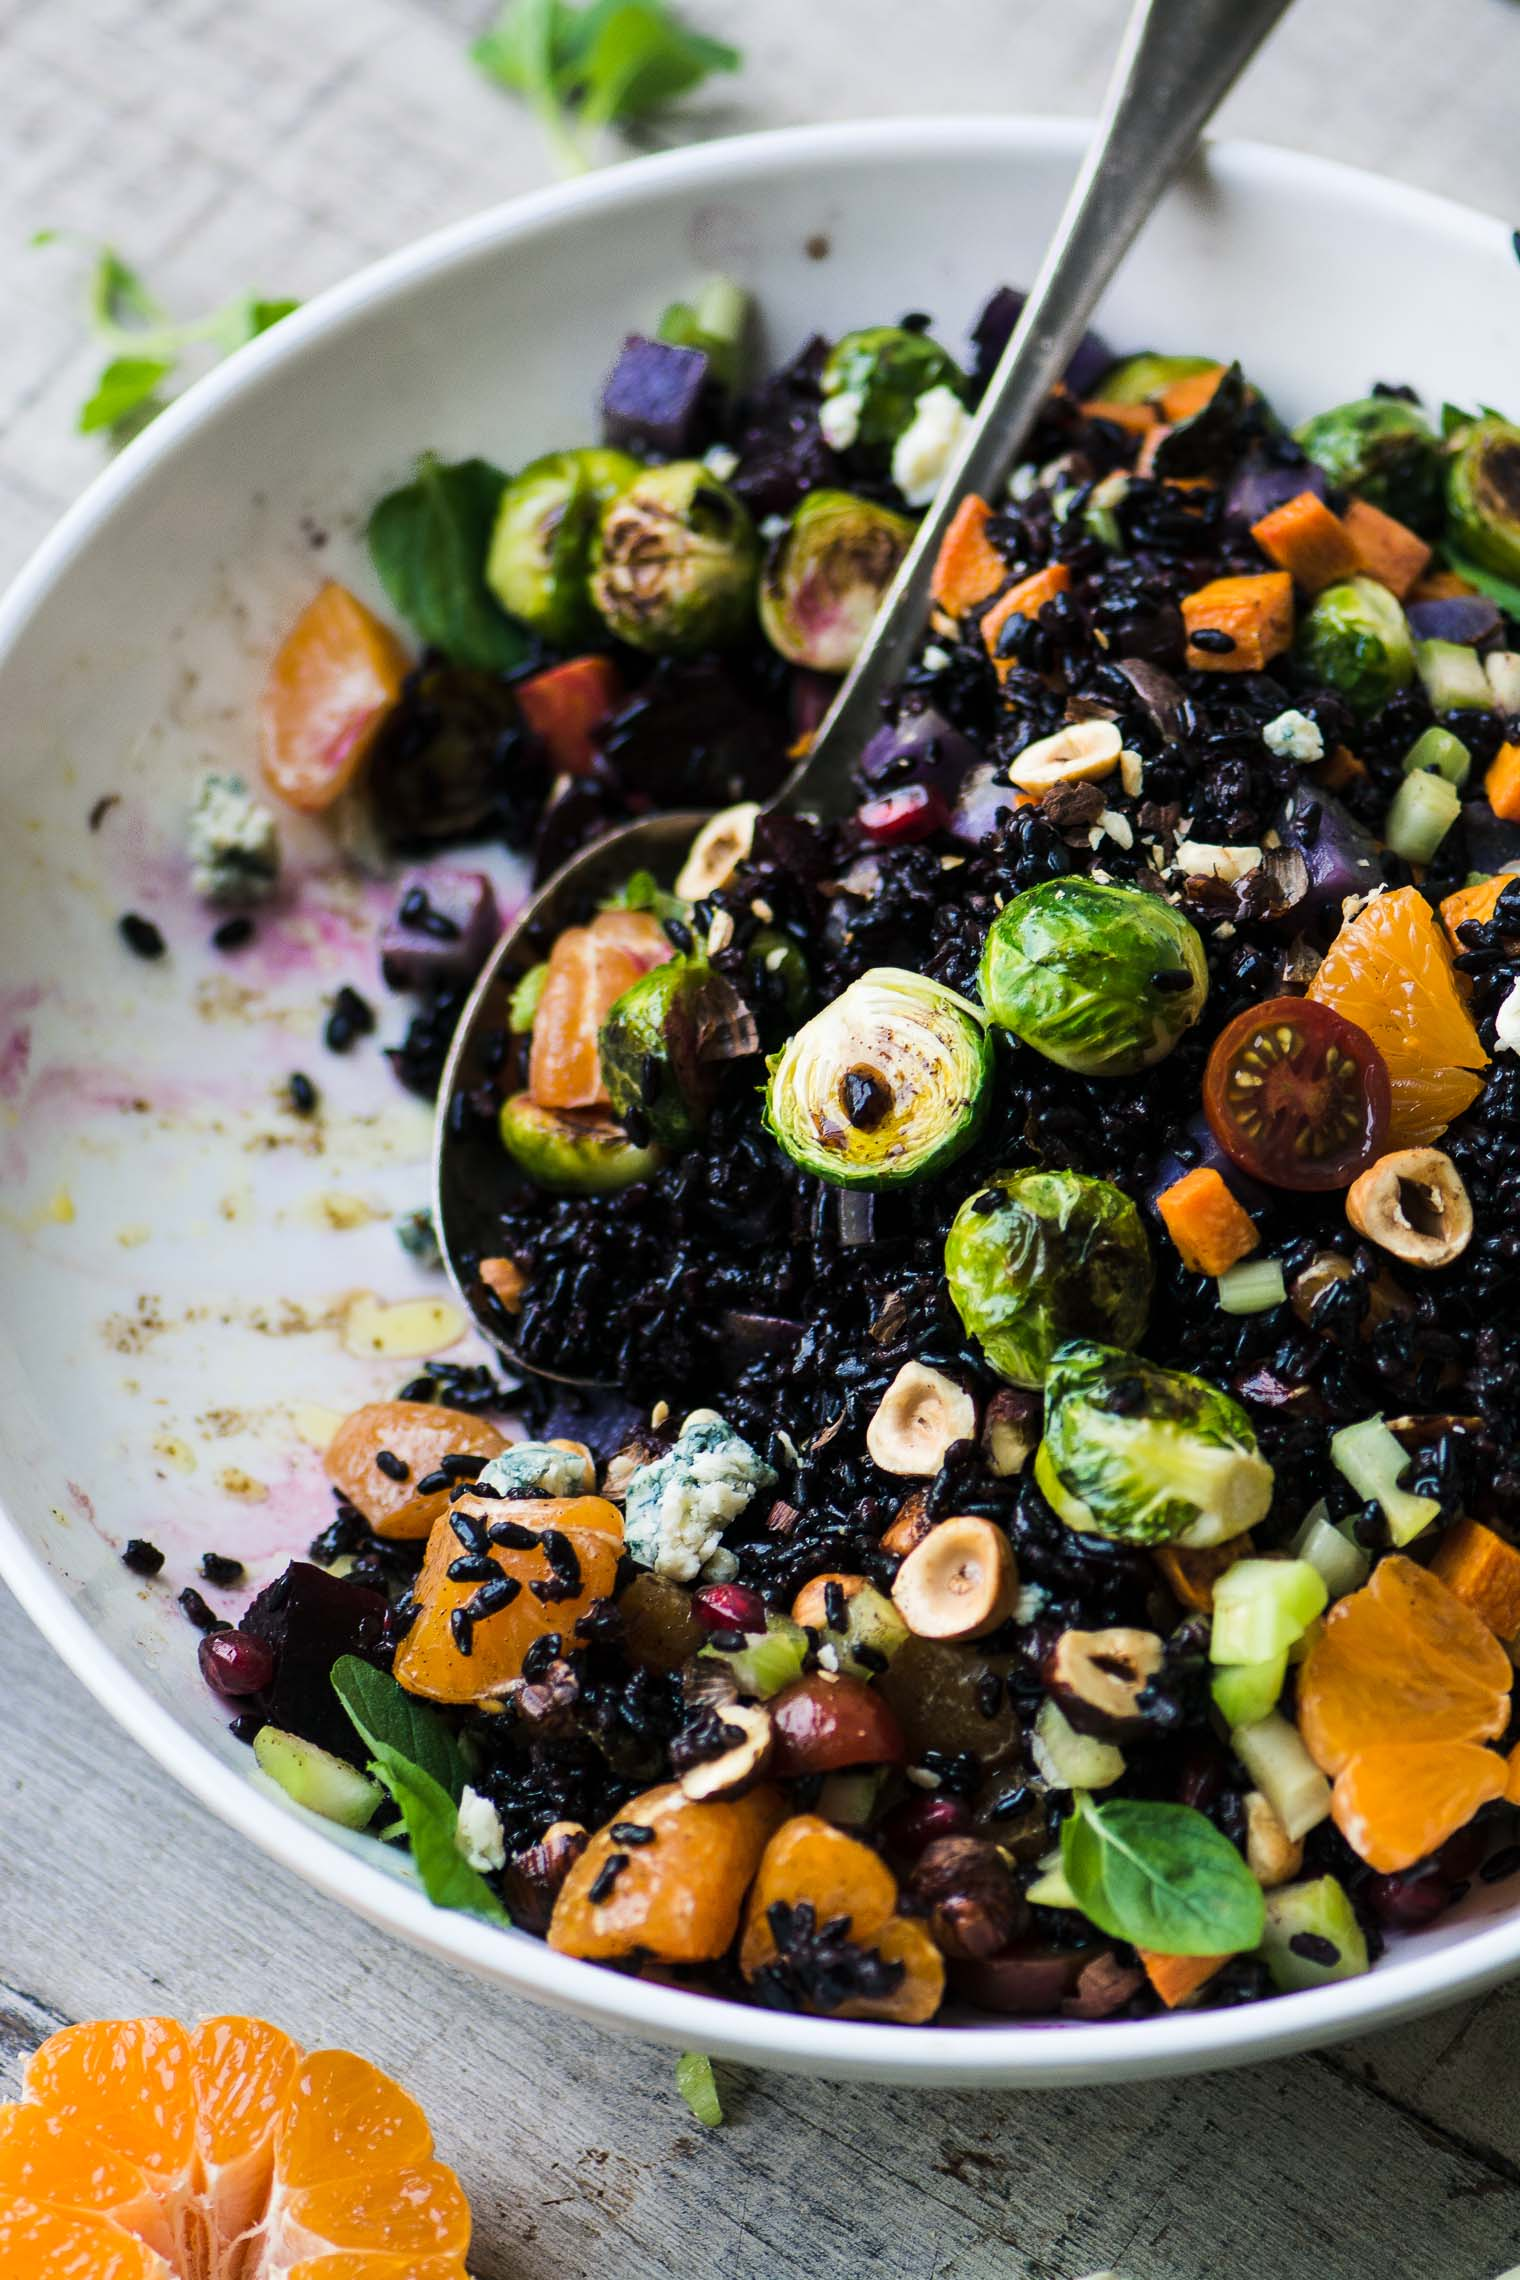 Black rice salad with roasted vegetables being tossed together in a white bowl.